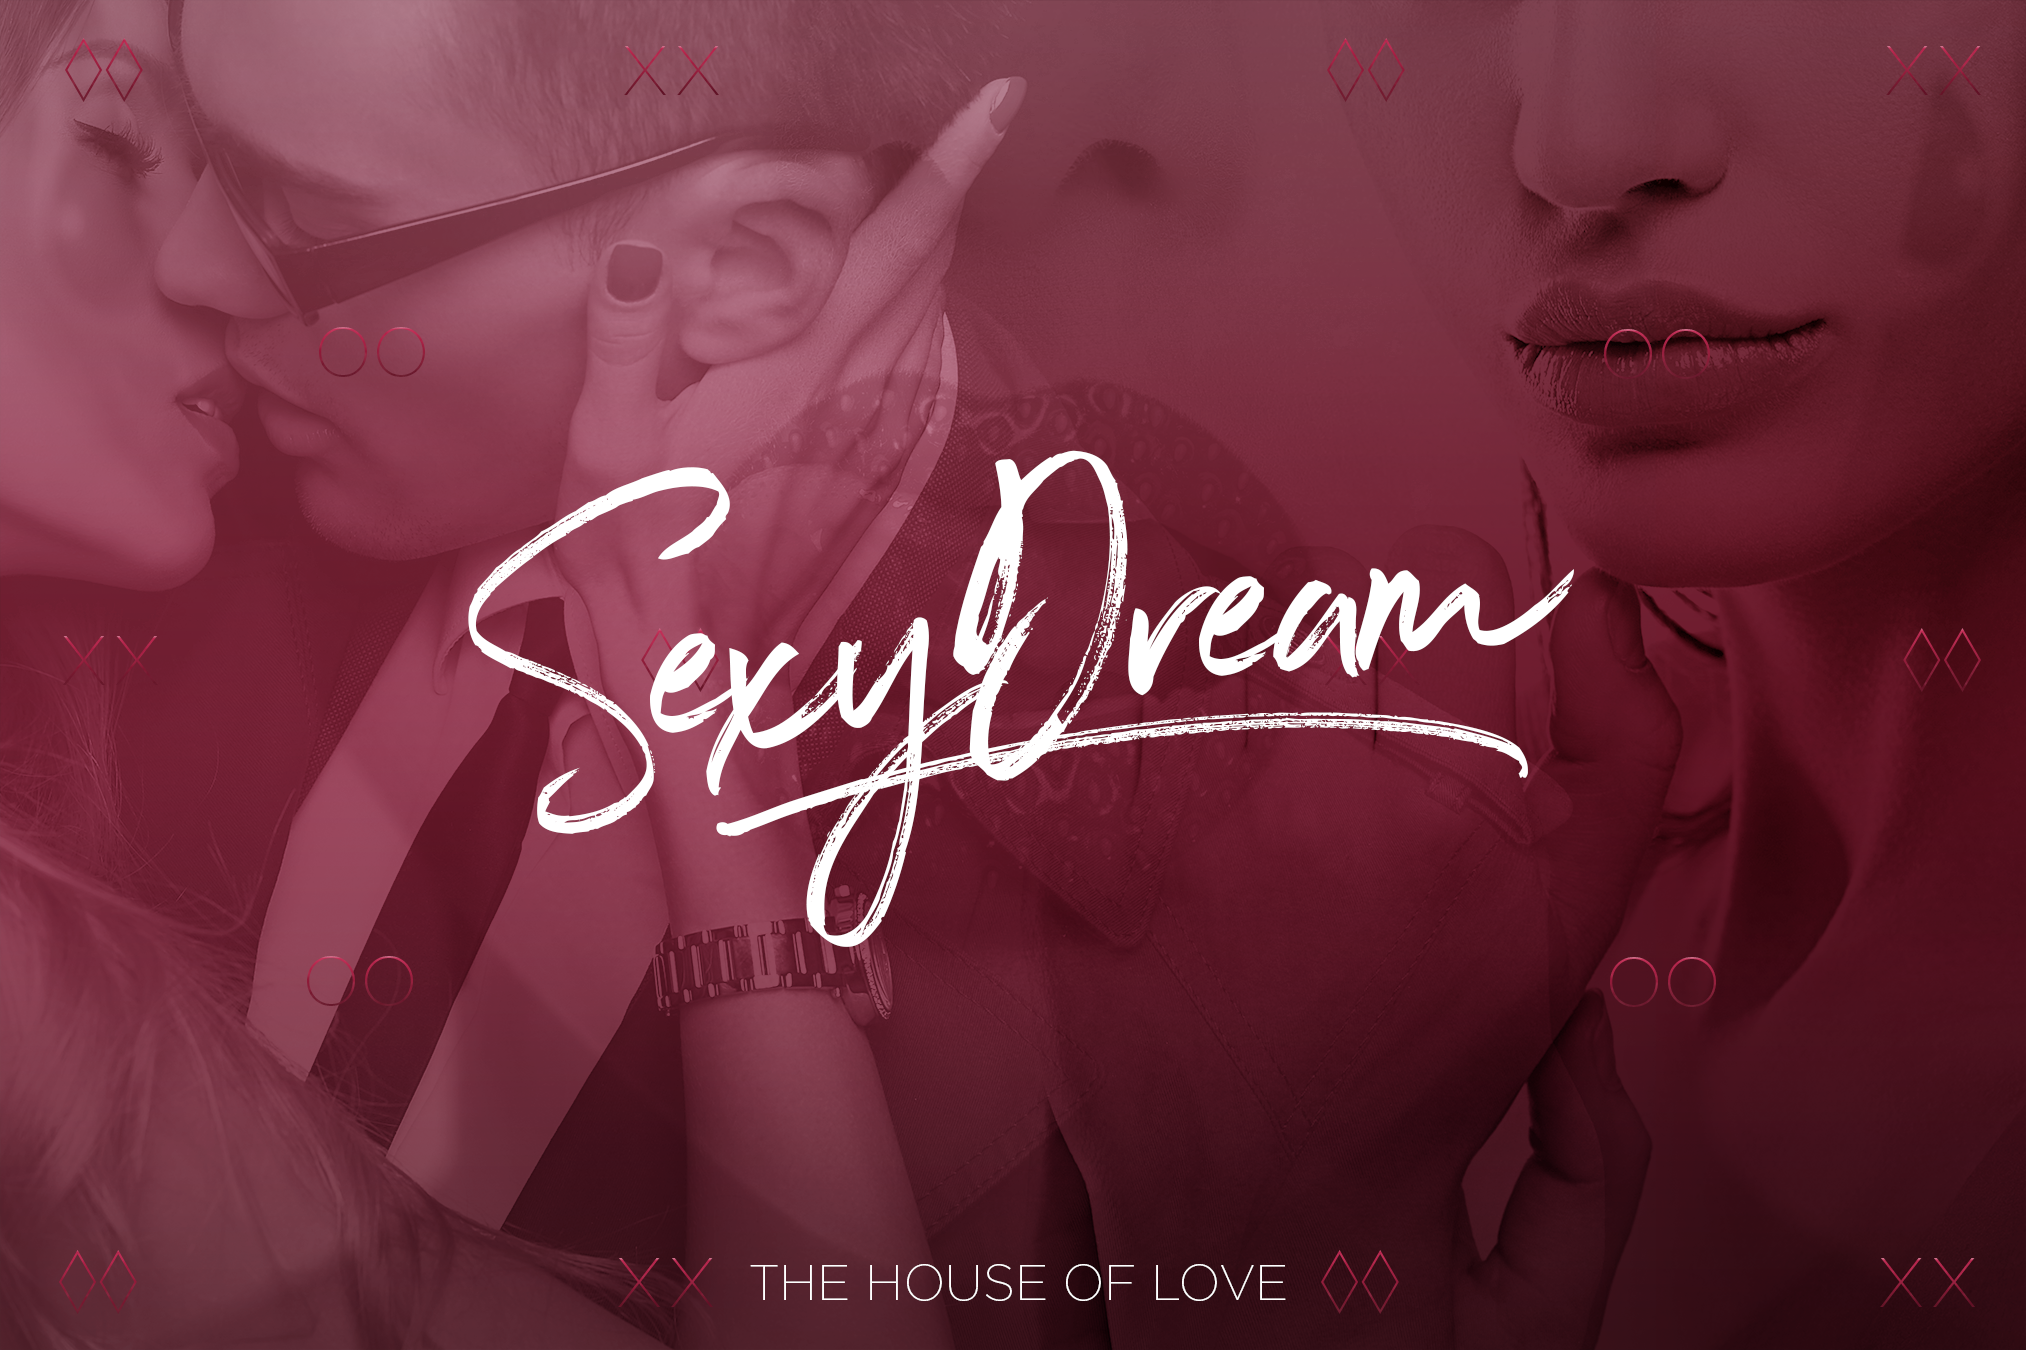 Sexydream_House-of-love_2